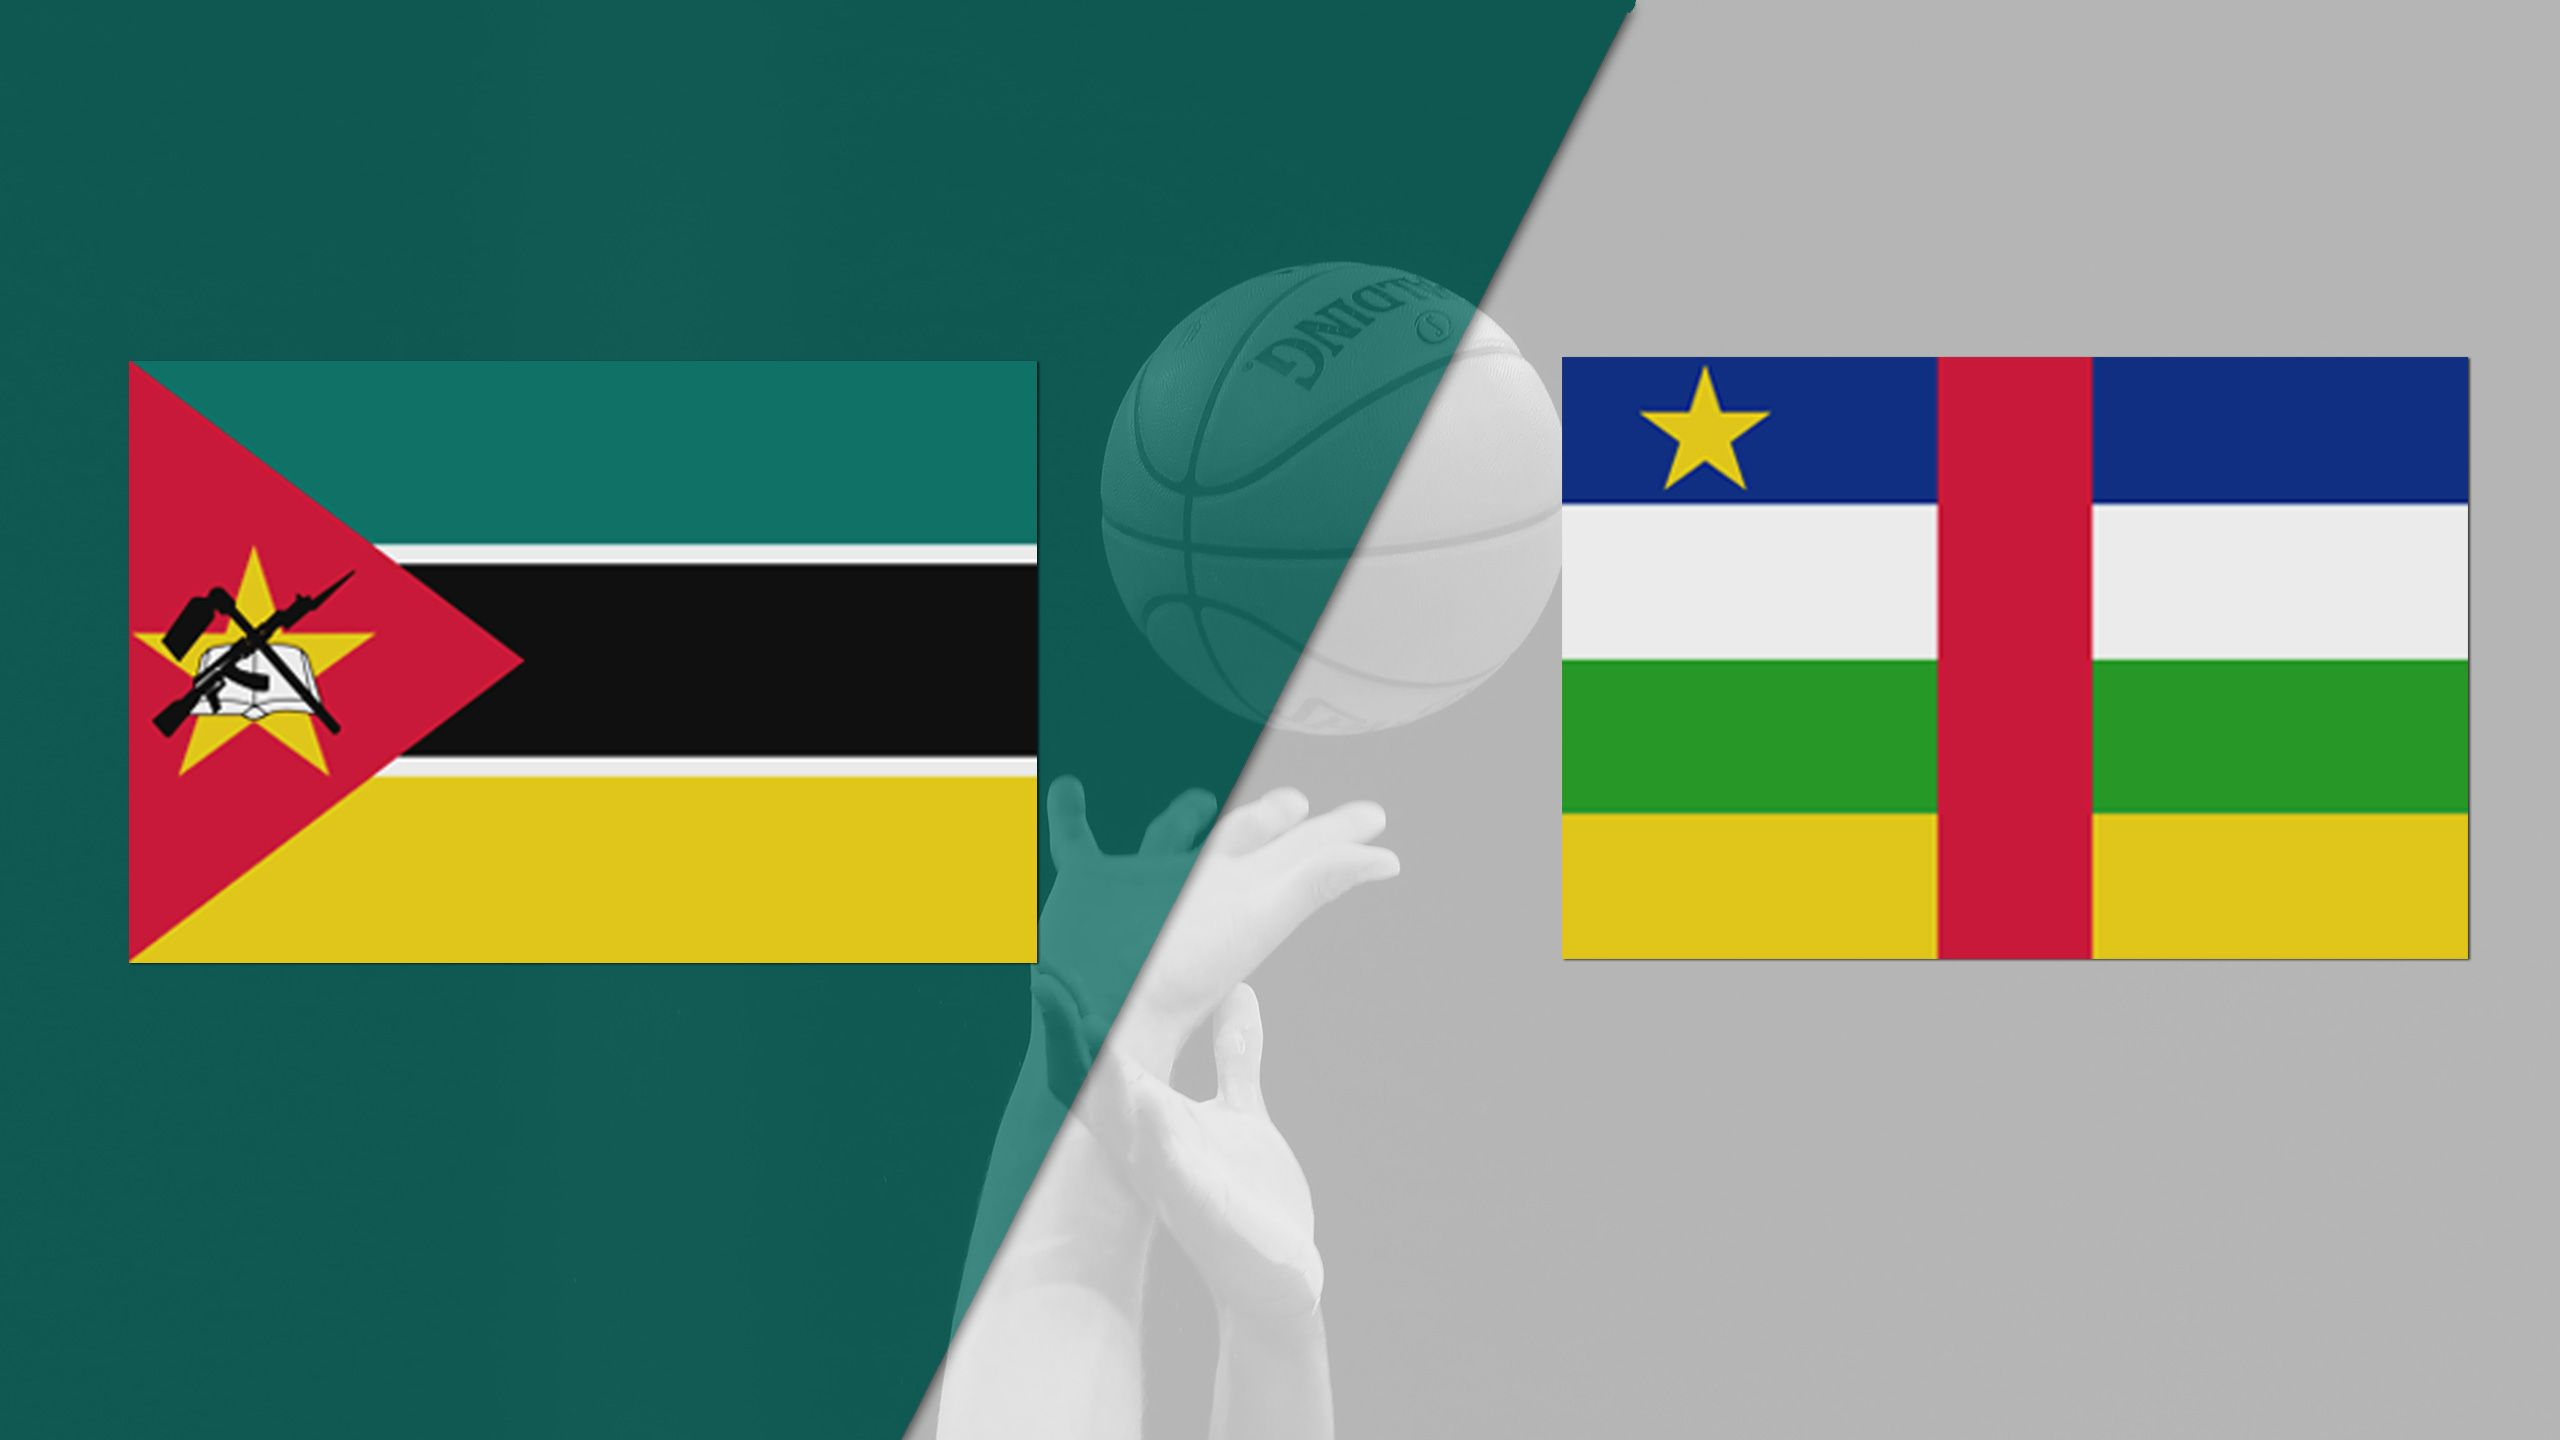 Mozambique vs. Central African Republic (FIBA World Cup 2019 Qualifier)